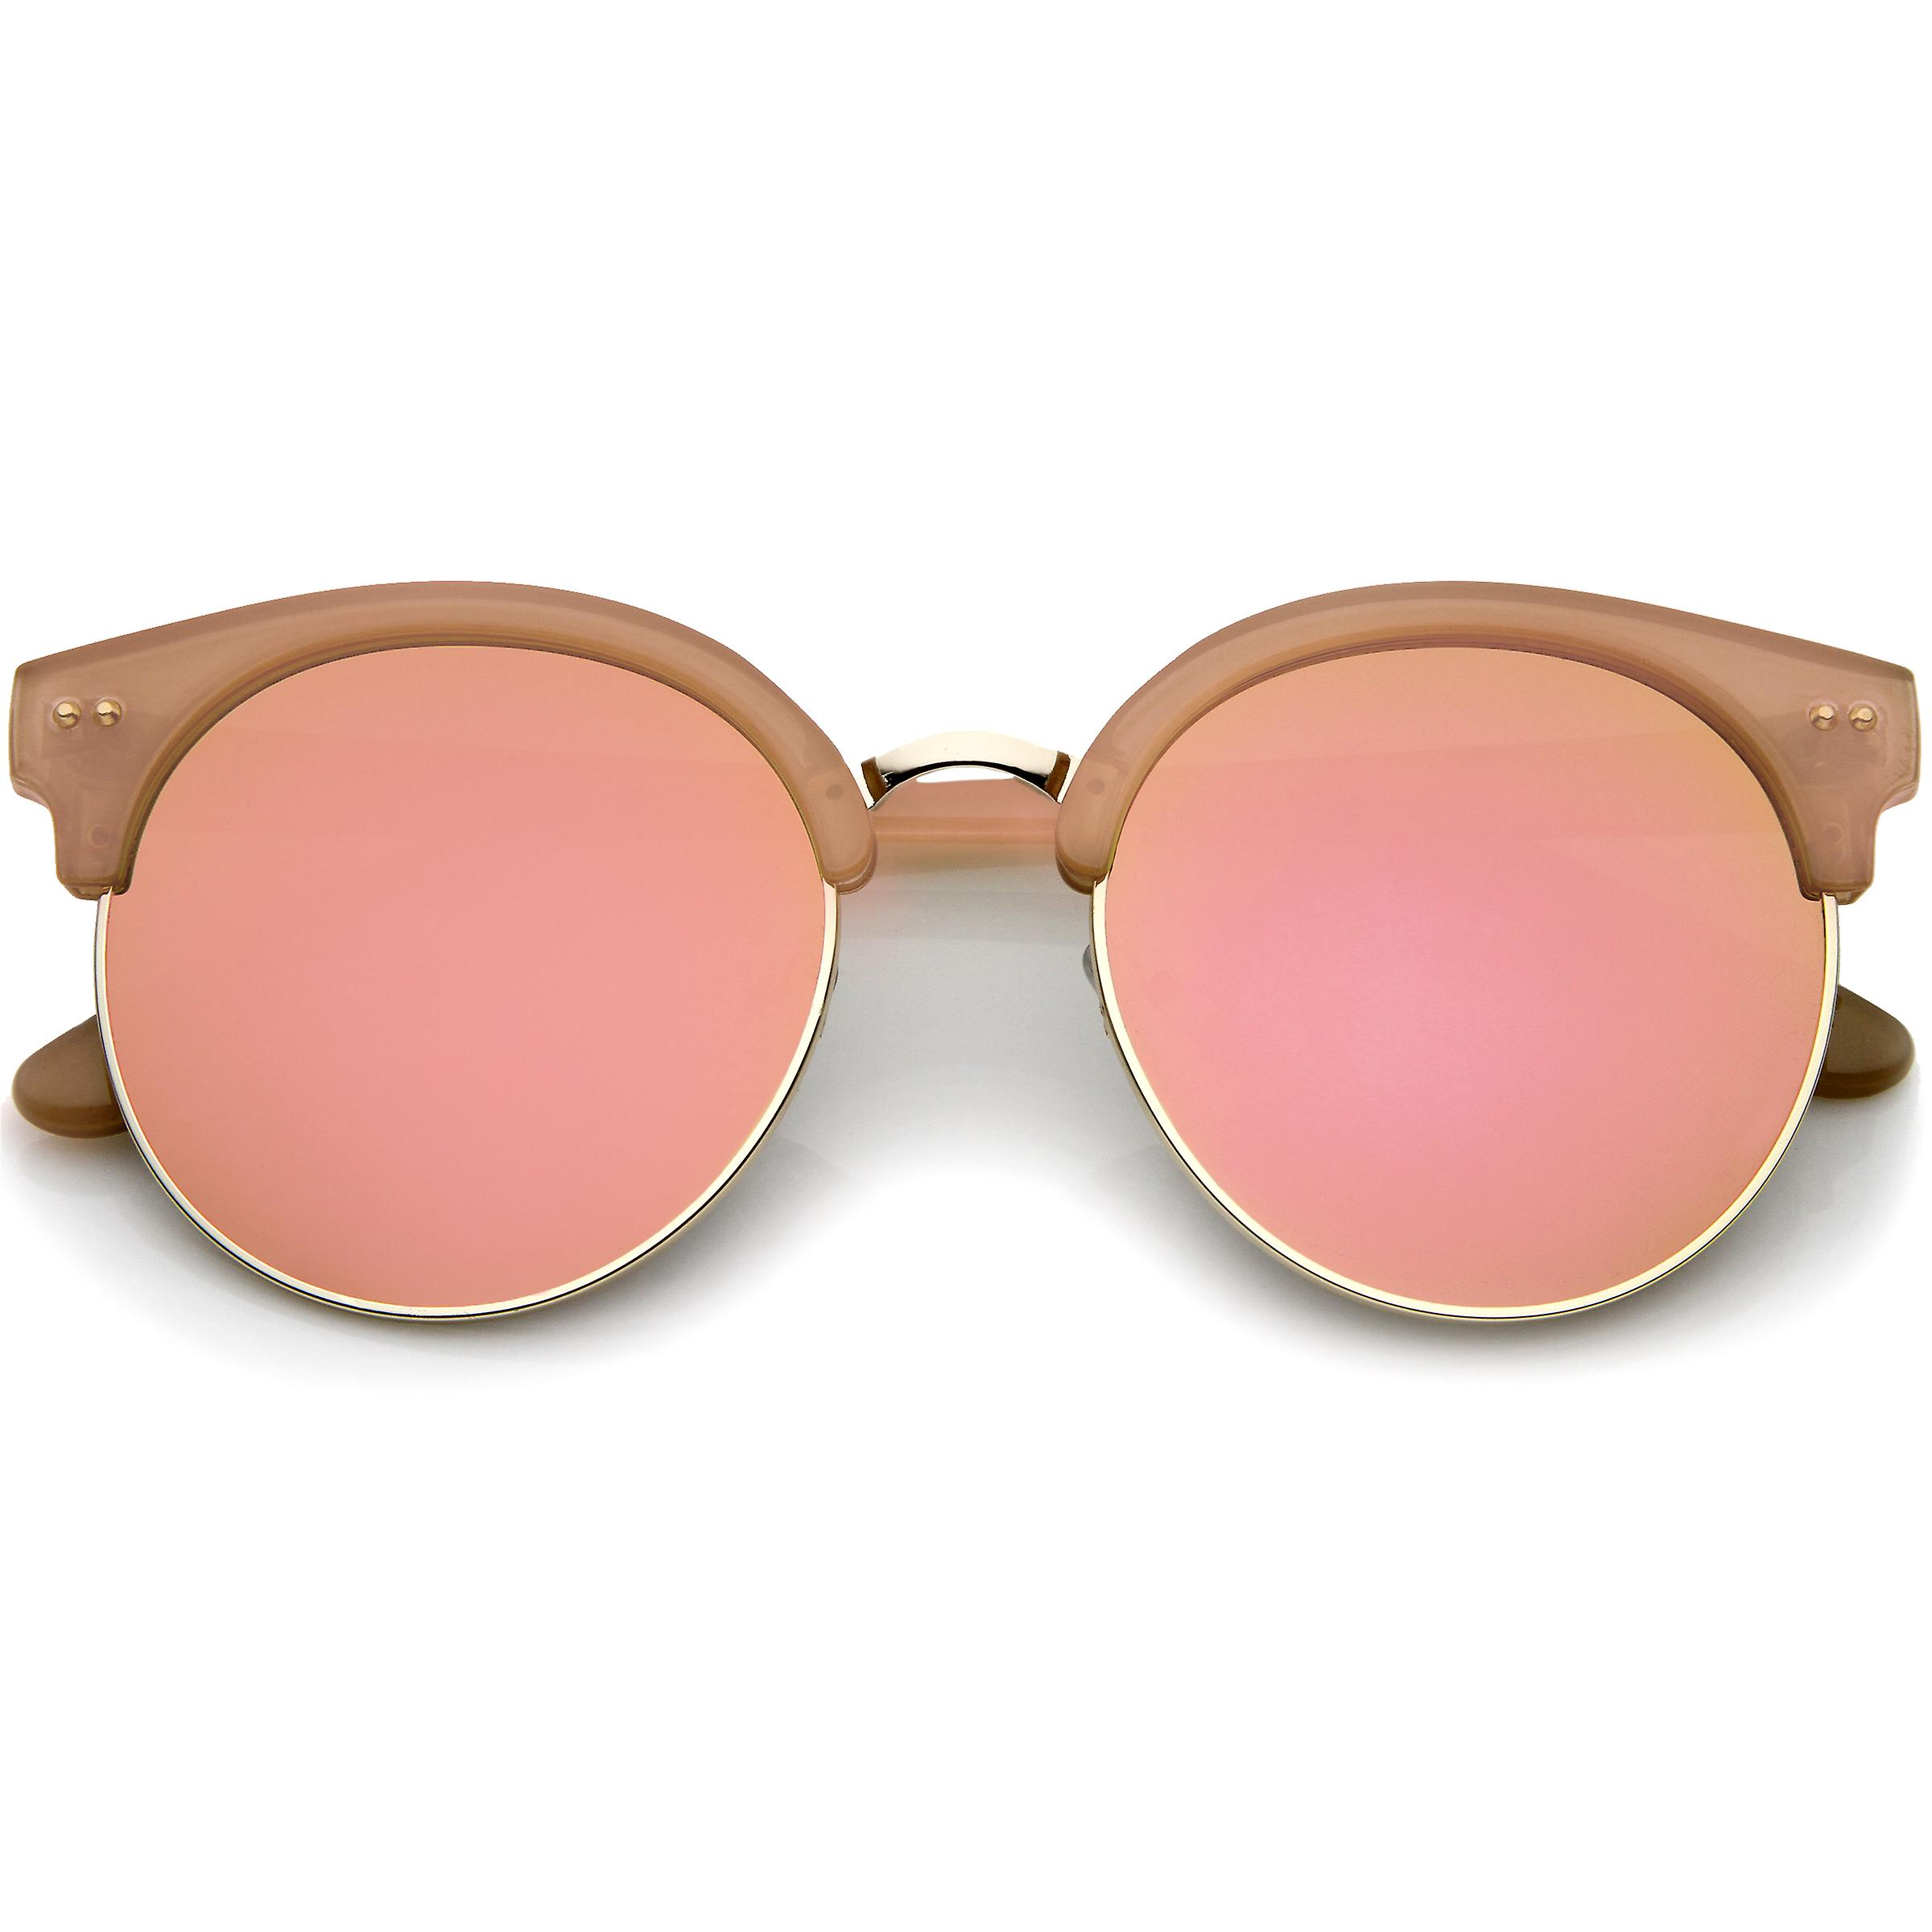 ad288135aef42 Womens Oversize Half Frame Color Mirror Flat Lens Round Sunglasses 55mm